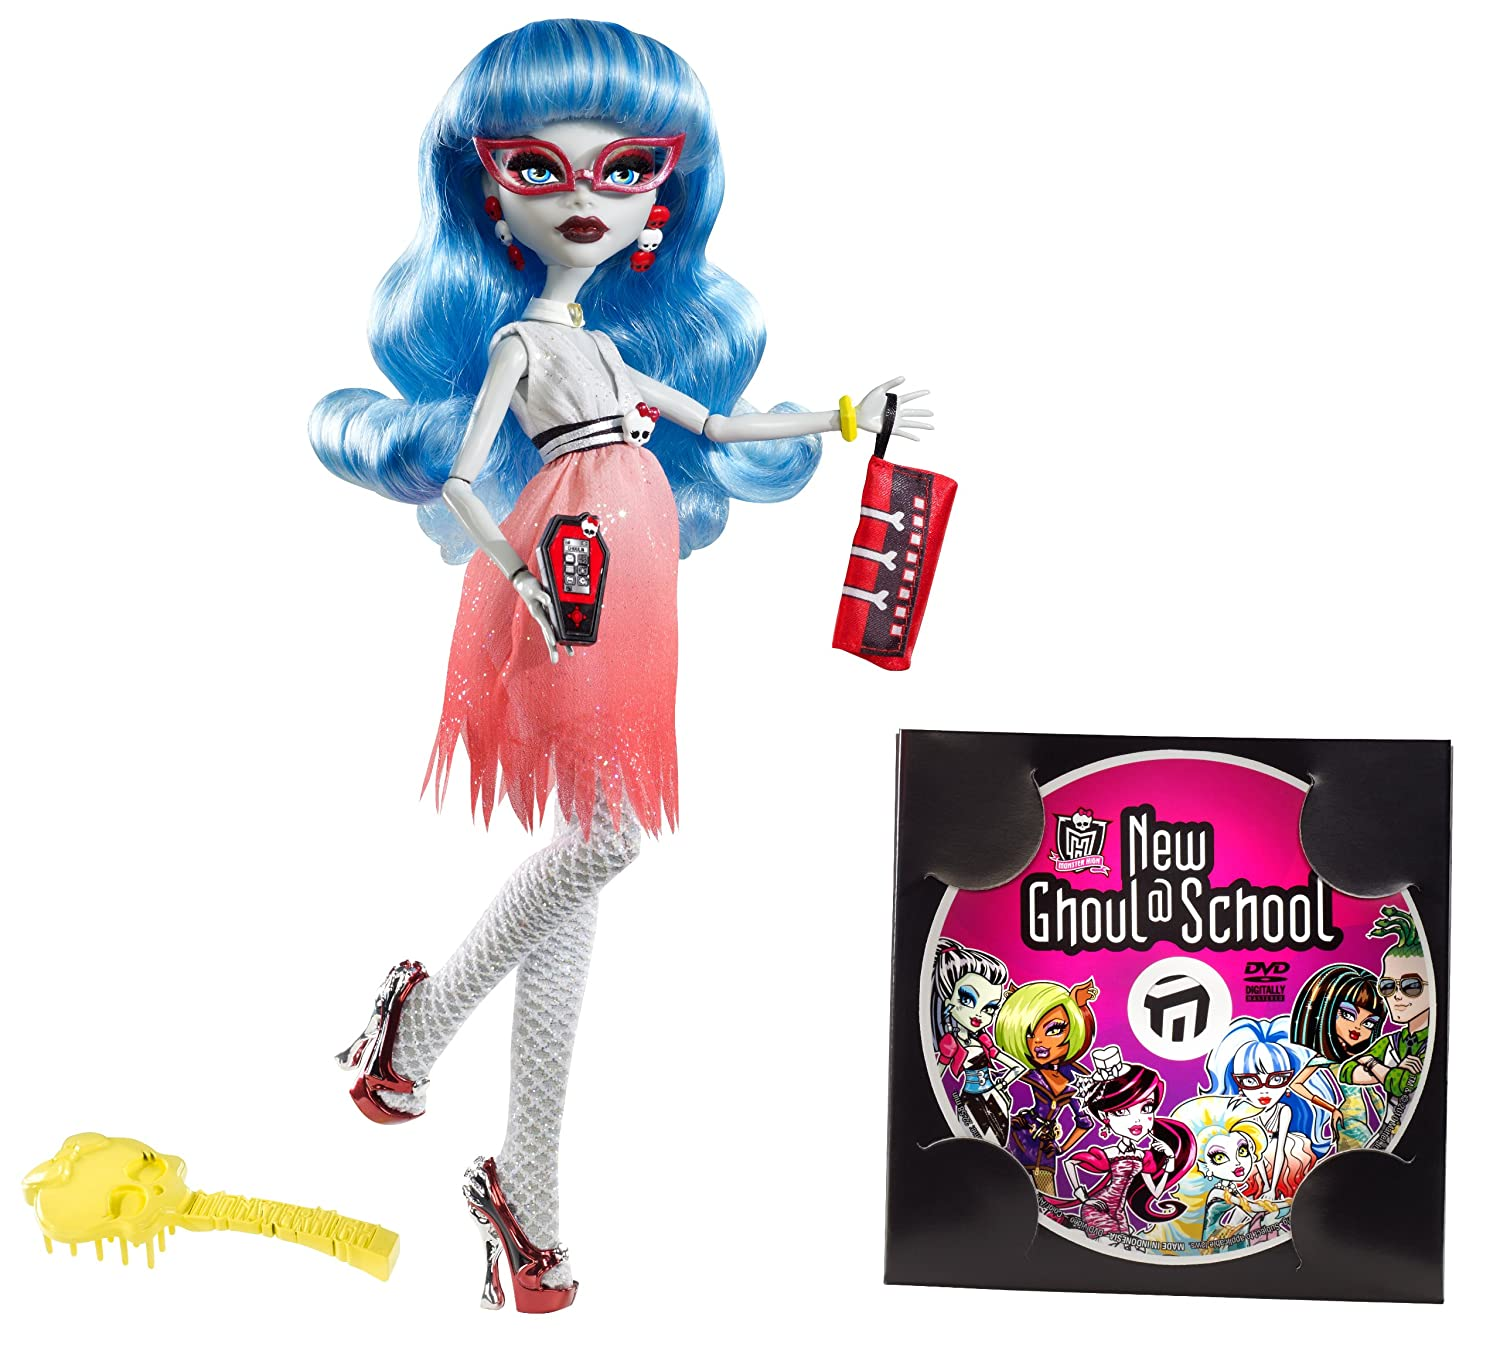 amazoncom monster high dawn of the dance ghoulia yelps doll toys games - Ghoulia Yelps